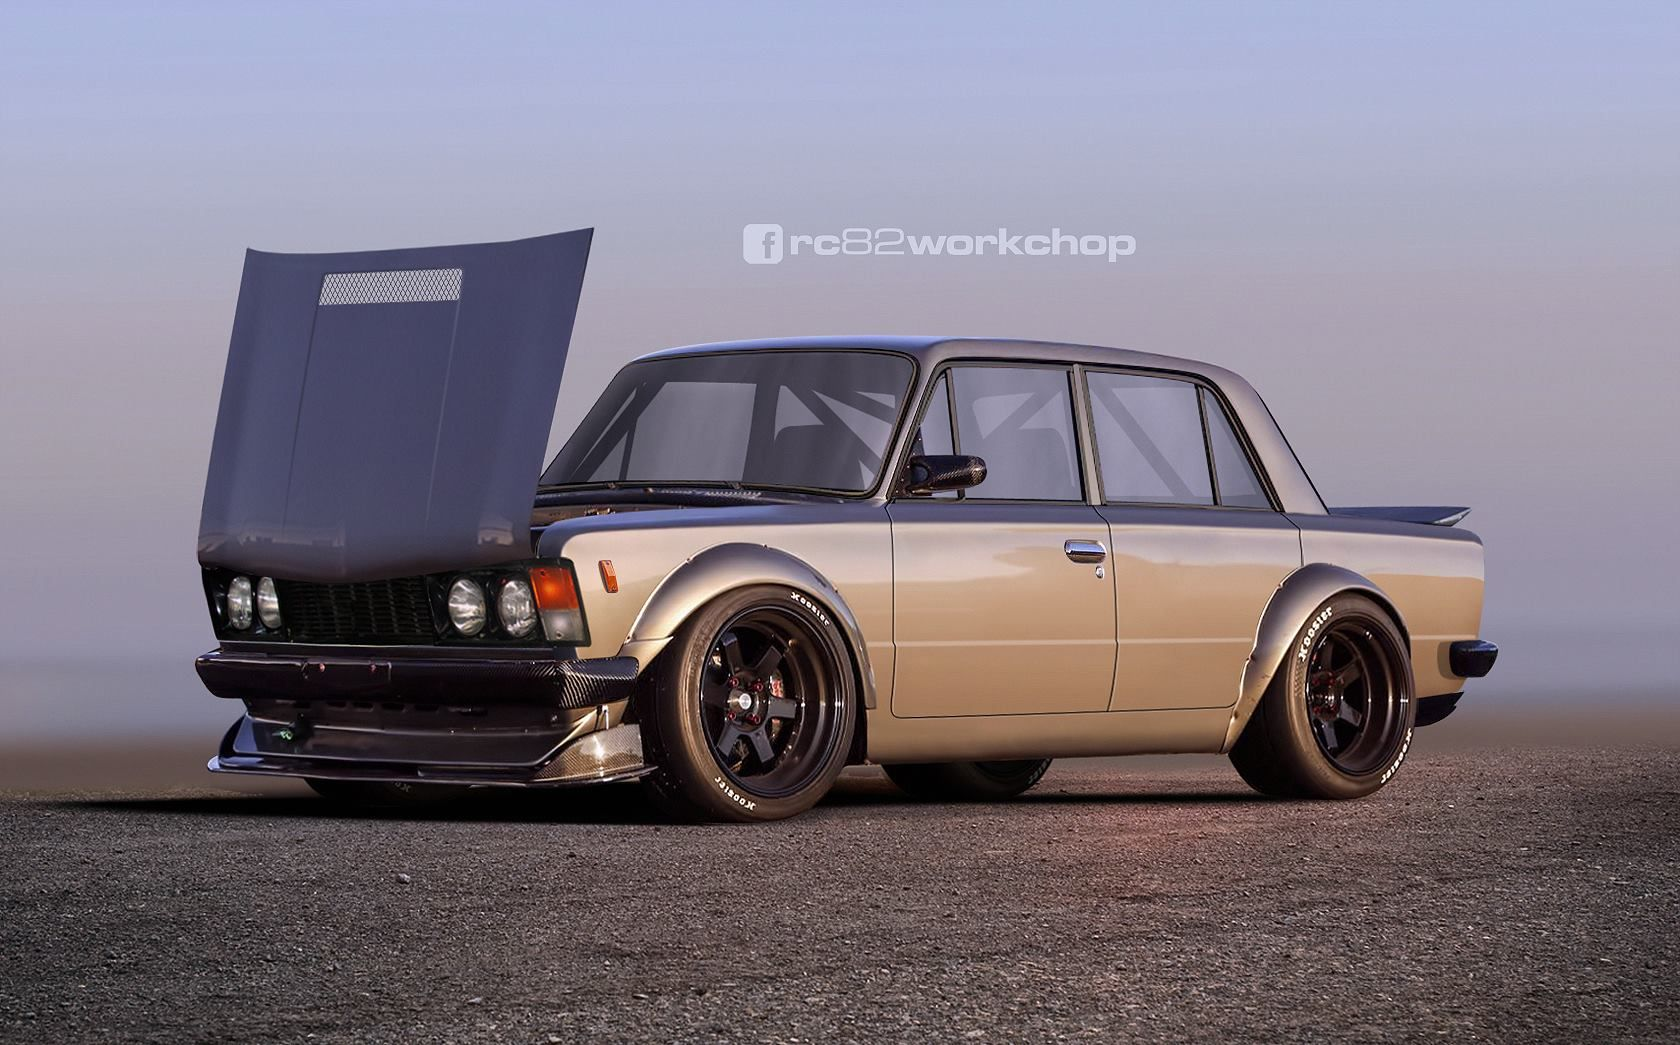 Fiat 125p Tuning With Images Fiat 128 Fiat 126 Custom Cars